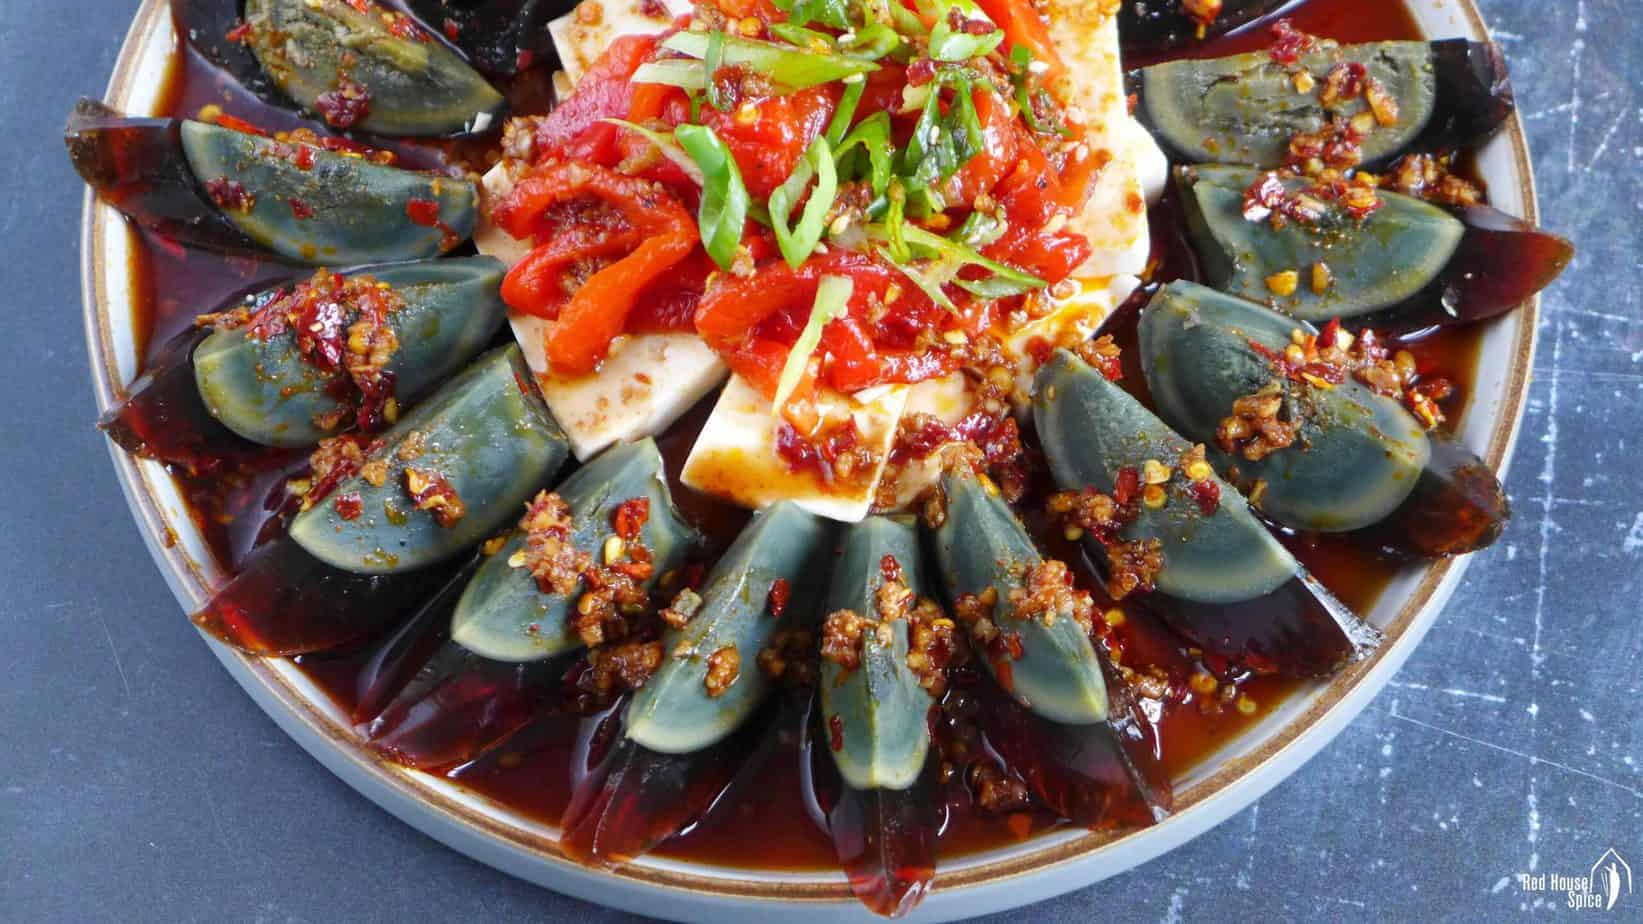 Century egg salad with tofu and roasted pepper.